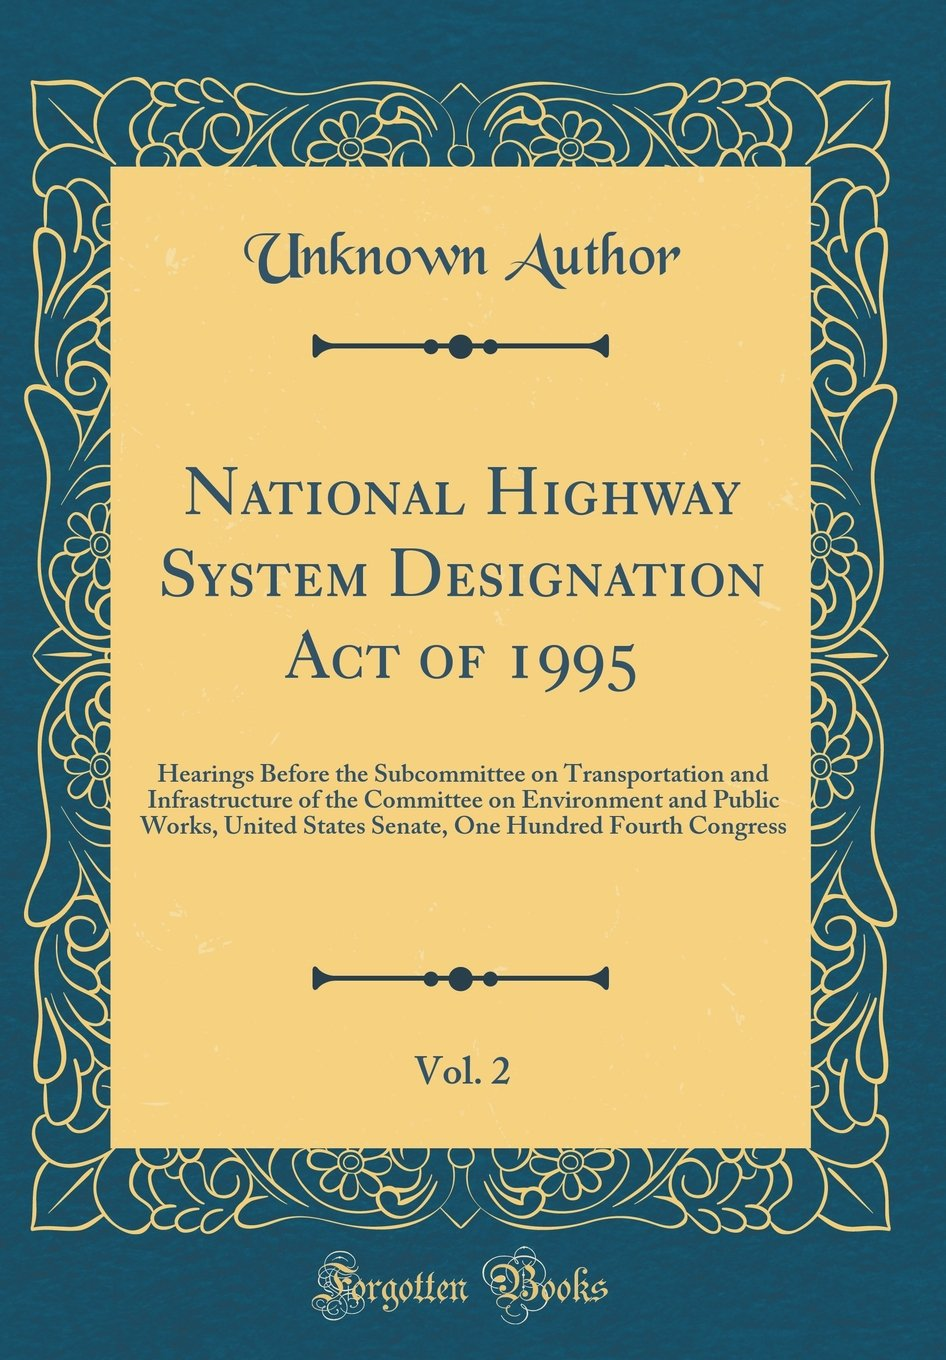 National Highway System Designation Act Of 1995 Vol 2 Hearings Before The Subcommittee On Transportation And Infrastructure Of The Committee On One Hundred Fourth Congress Classic Reprint 9780656153749 Amazon Com Books